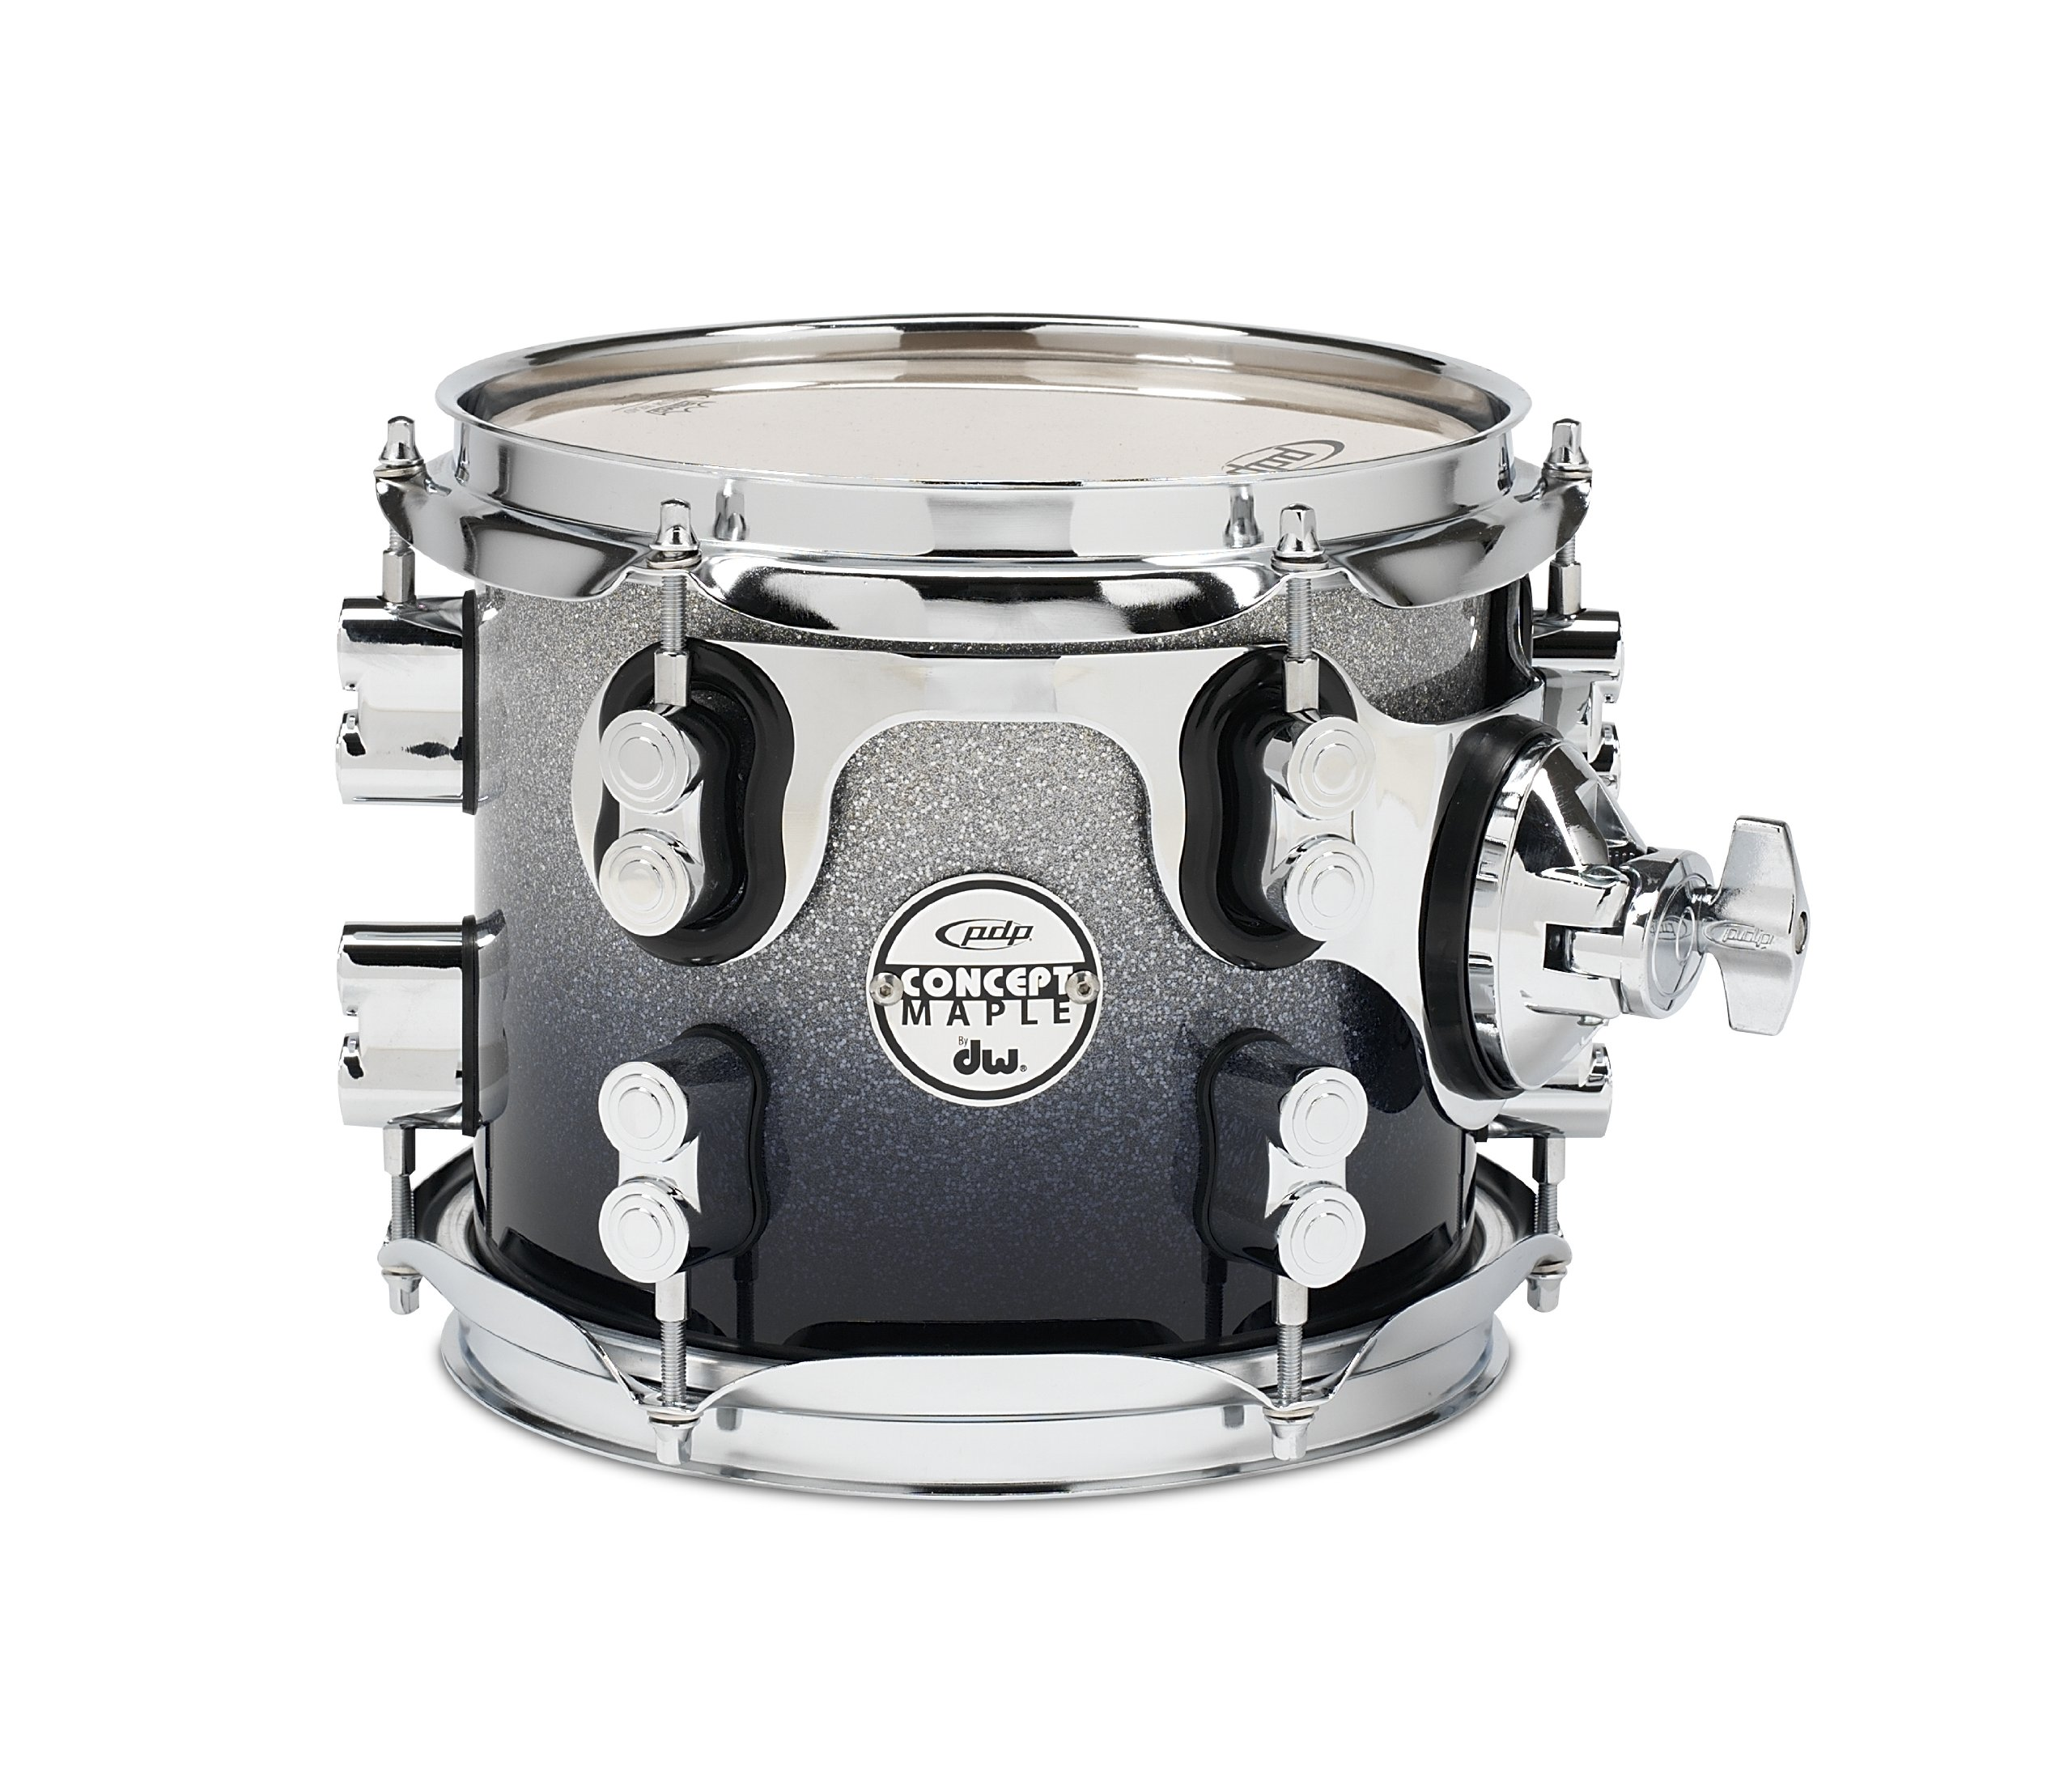 Pacific Drums PDCM0708STSB 7 x 8 Inches Tom with Chrome Hardware - Silver to Black Fade by Pacific Drums